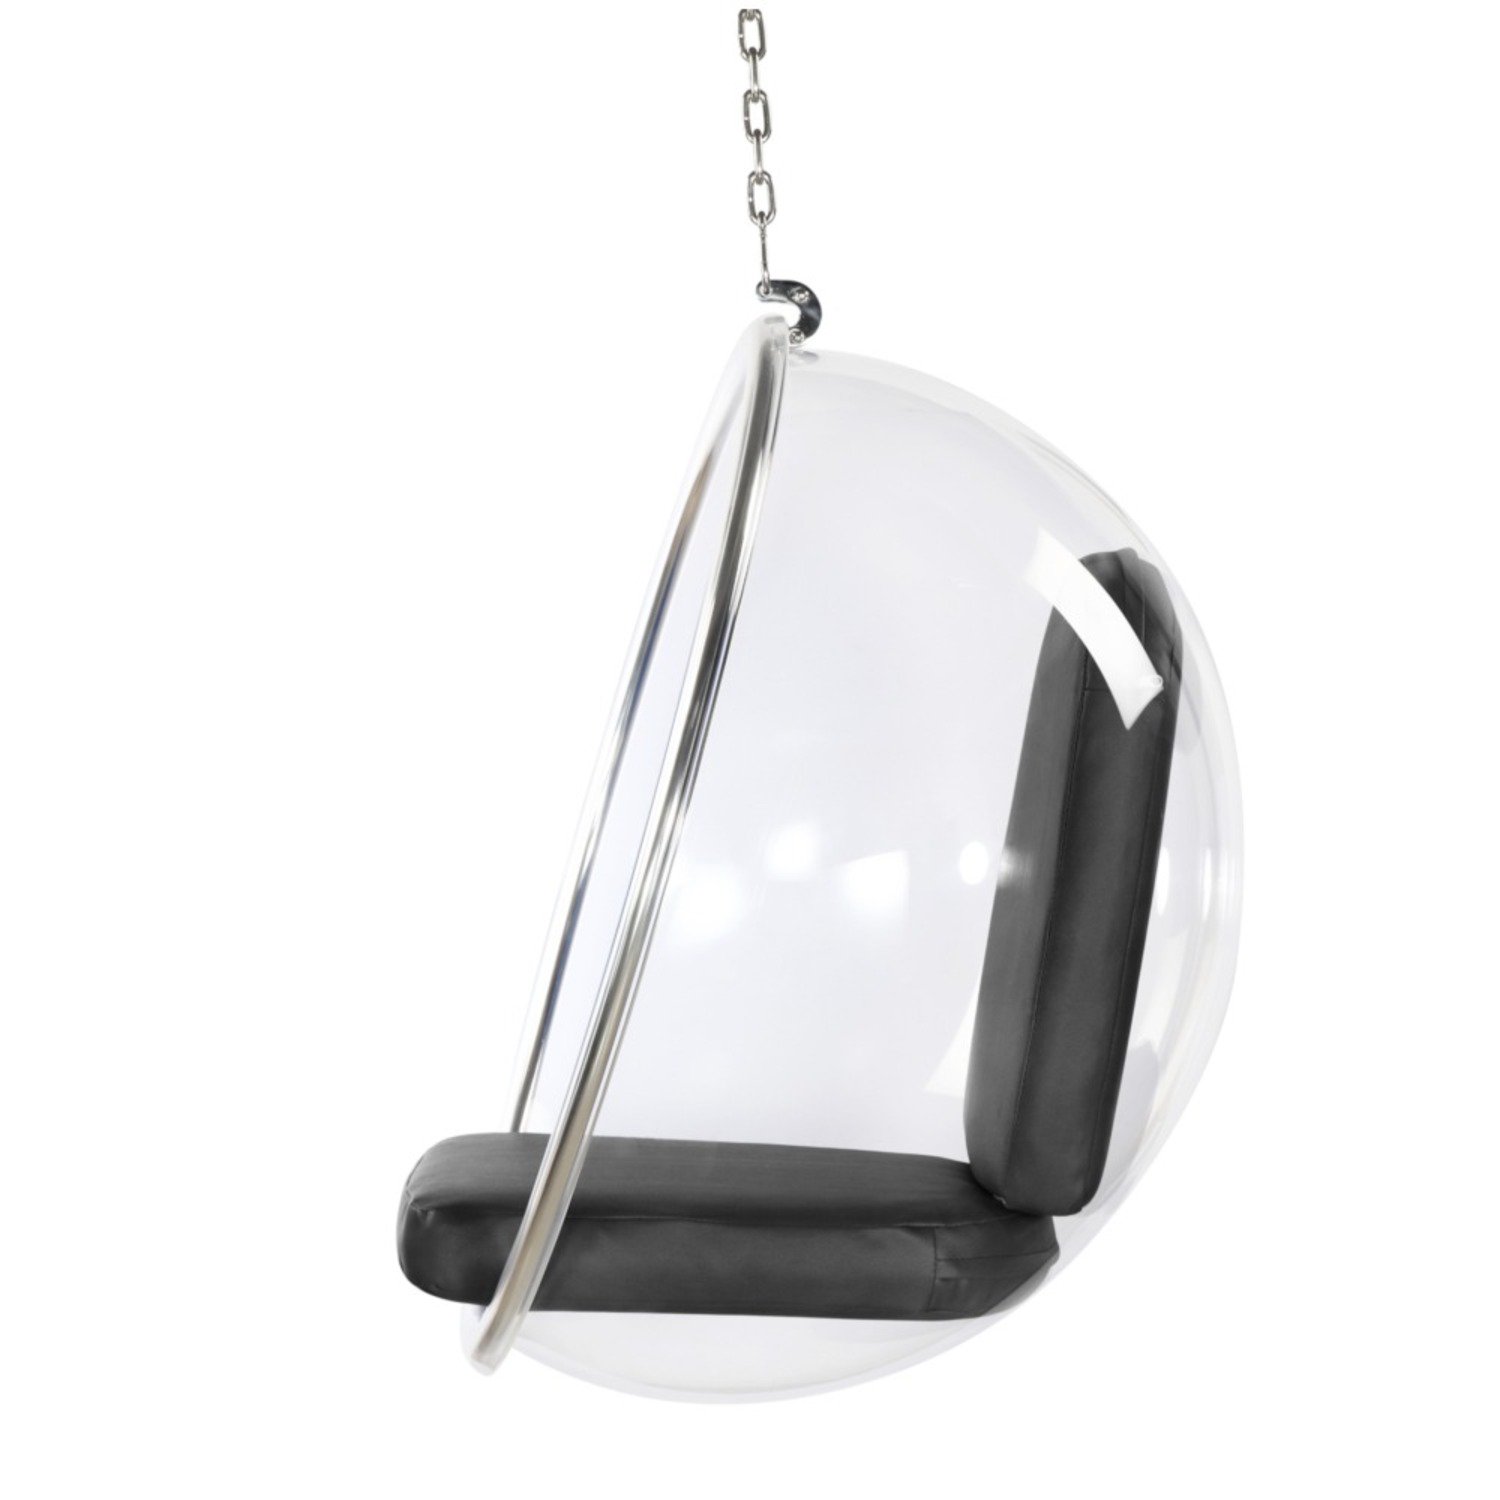 Hanging Chair In Clear Acrylic & Gray PU Leather - image-3